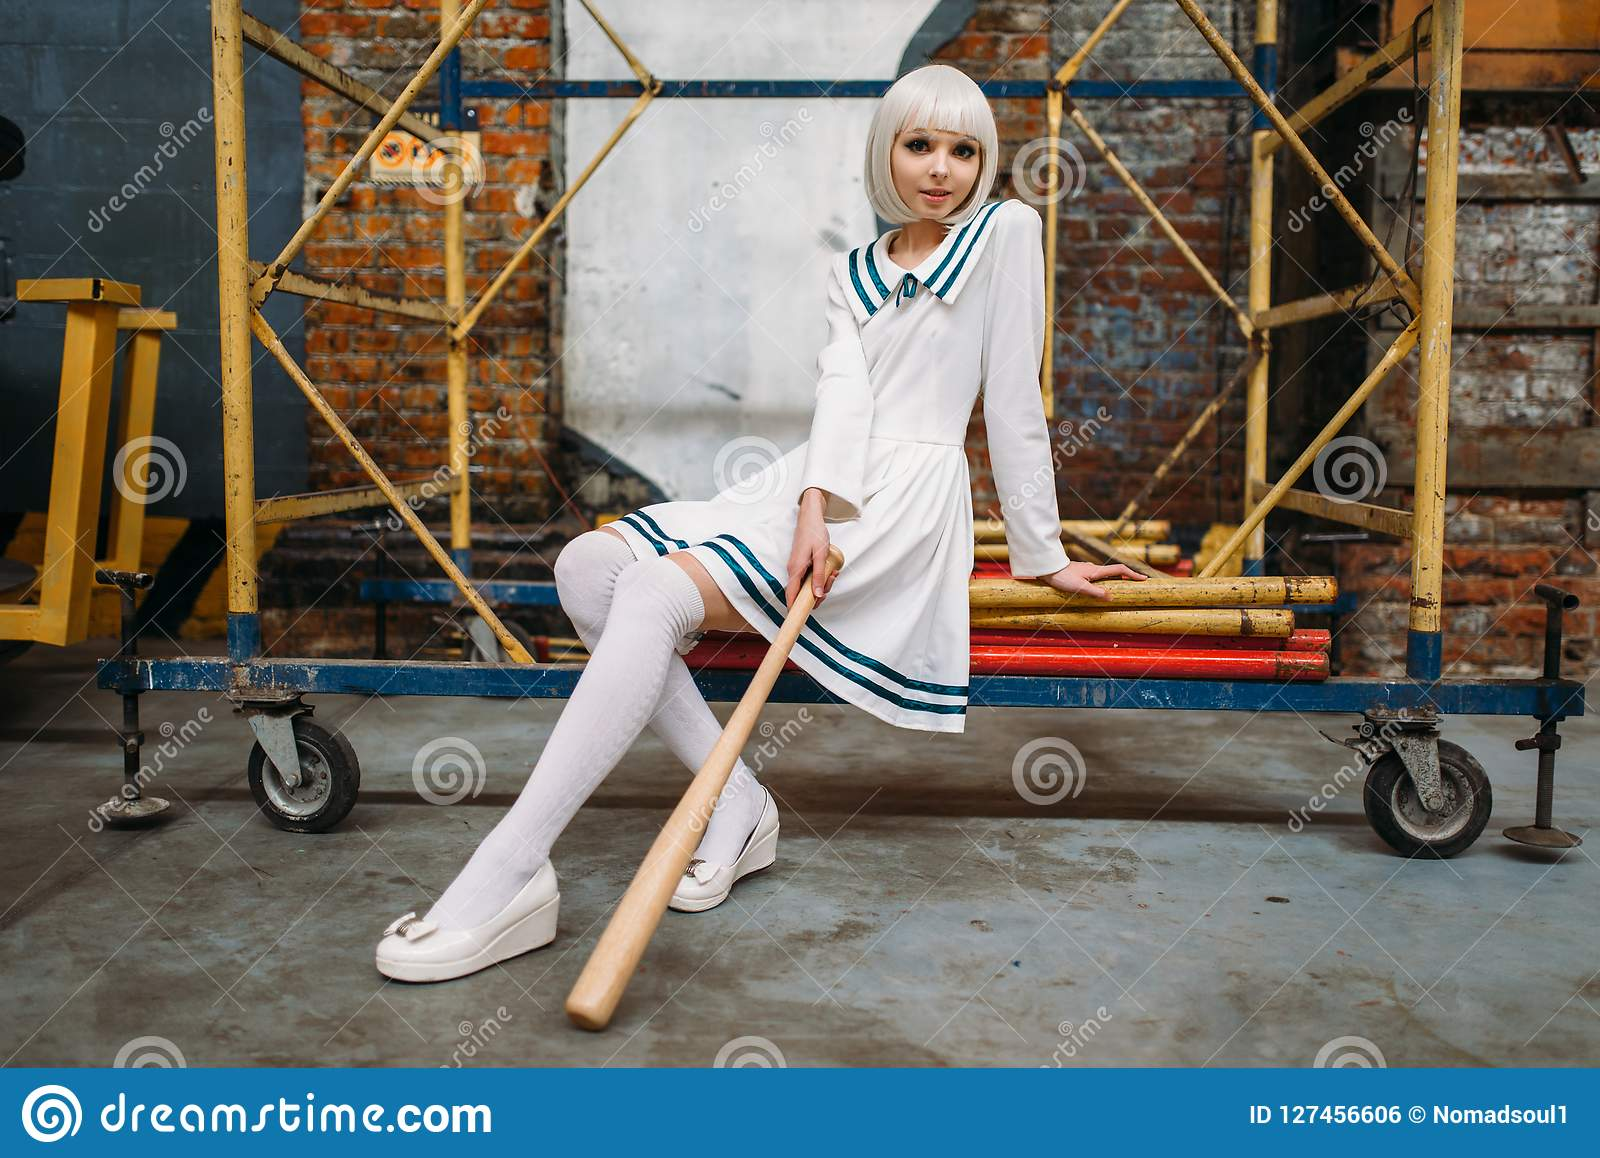 Anime girl with baseball bat, doll in uniform